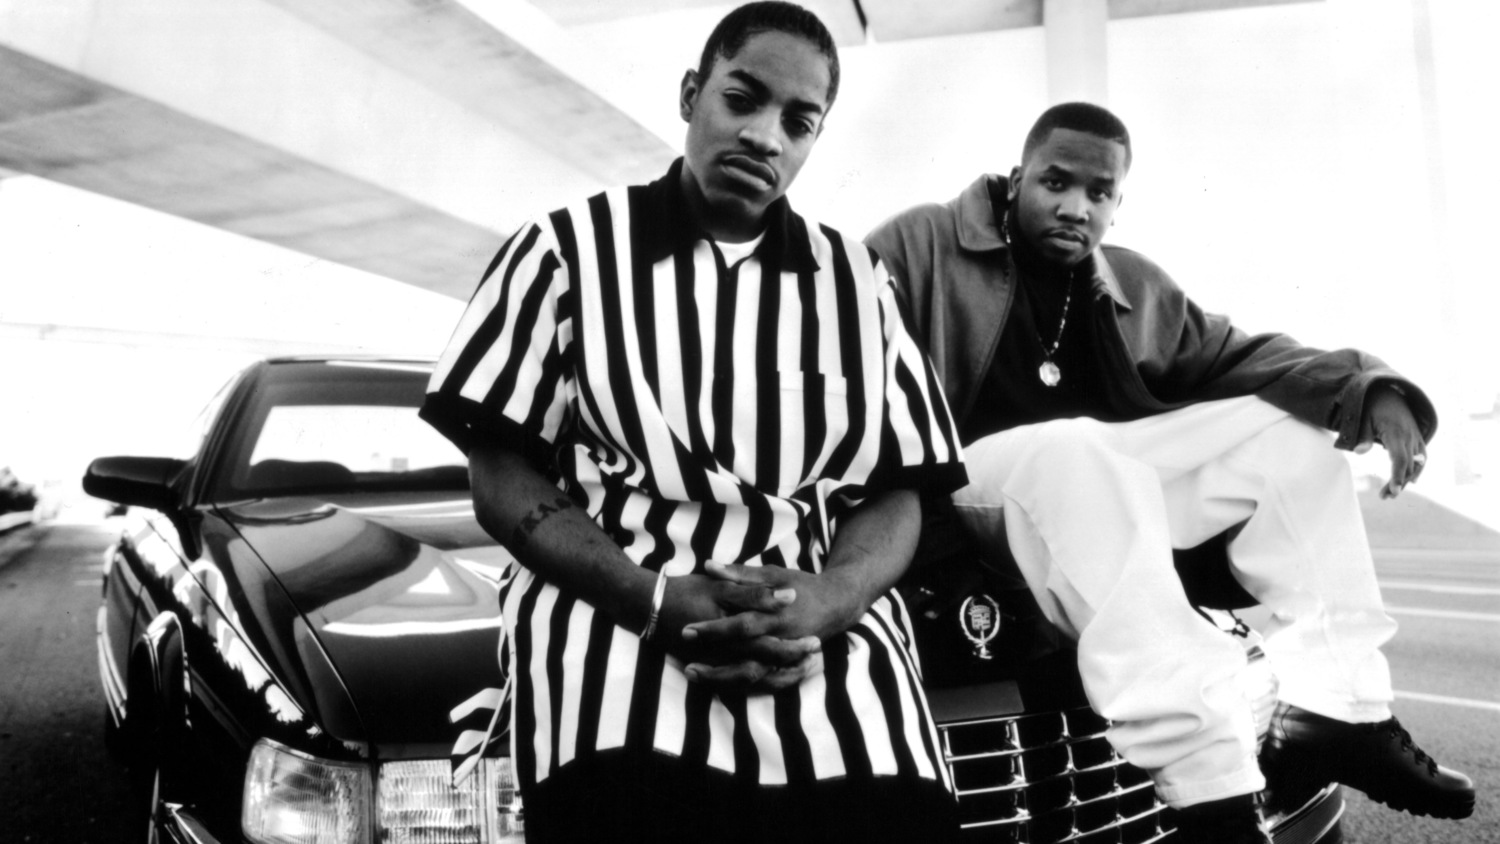 Thursday CarTune: Two Dope Boys (In a Cadillac) by Outkast ...